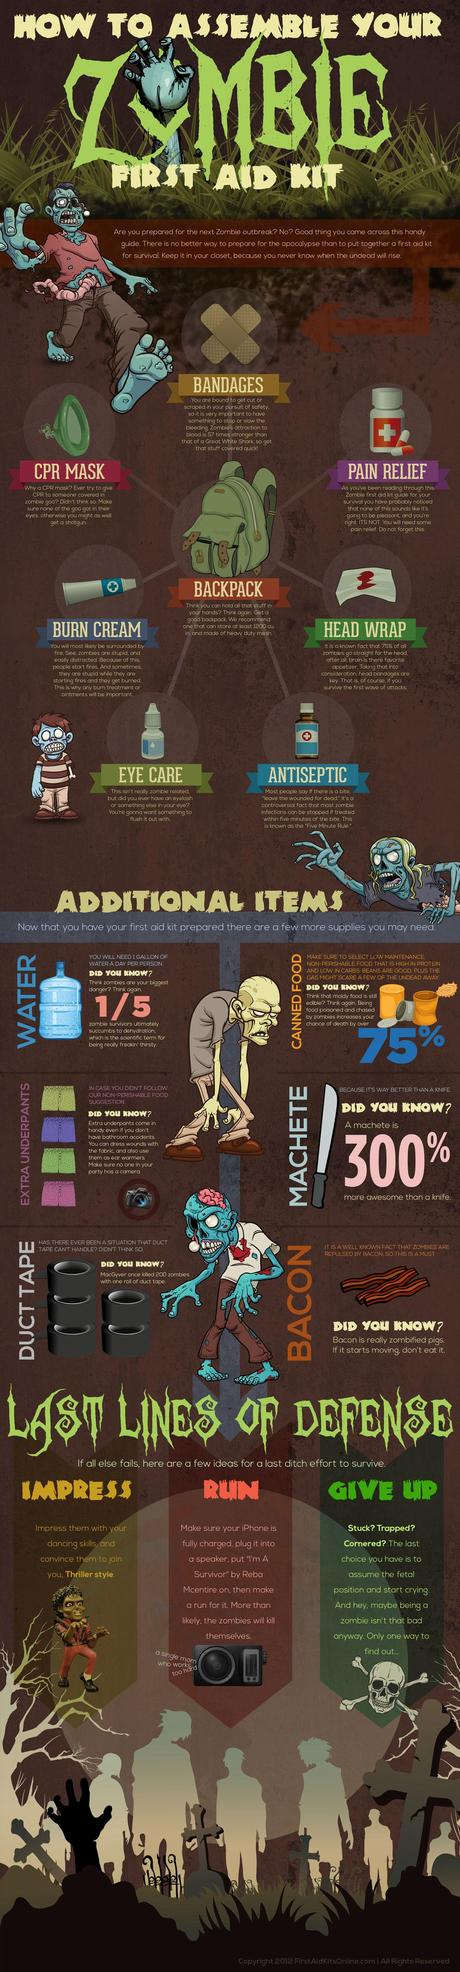 How To Build The Perfect Zombie Survival Kit